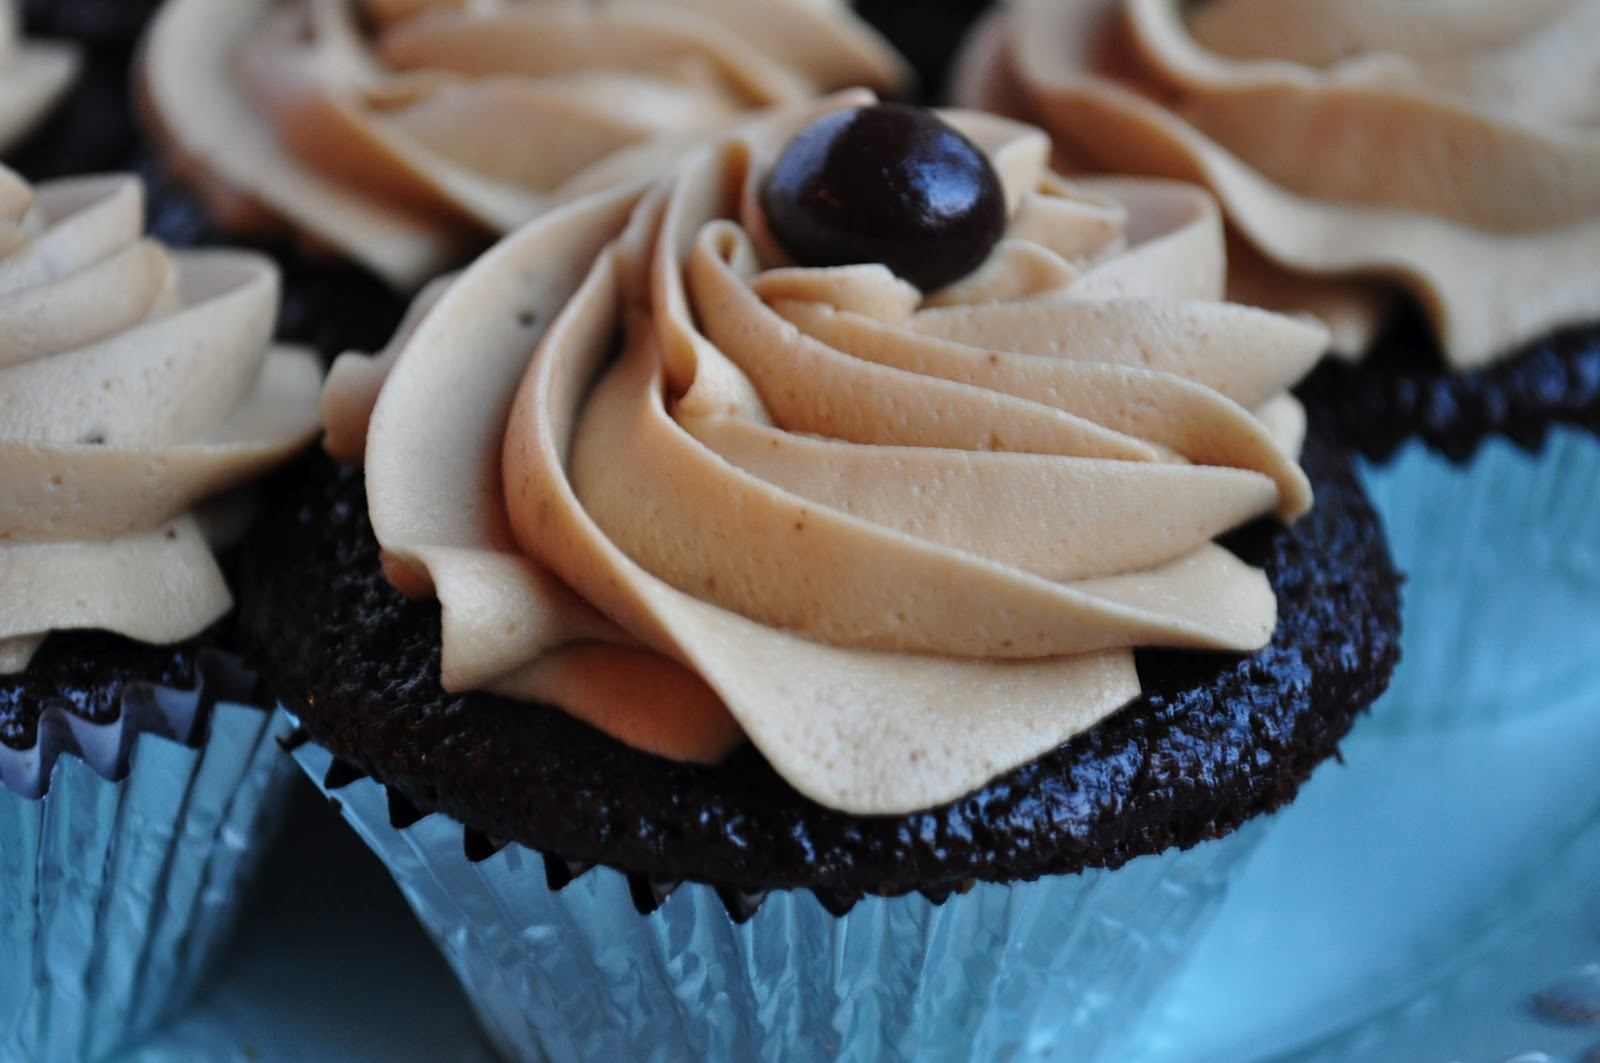 Kahlua Cupcakes with Mocha Frosting